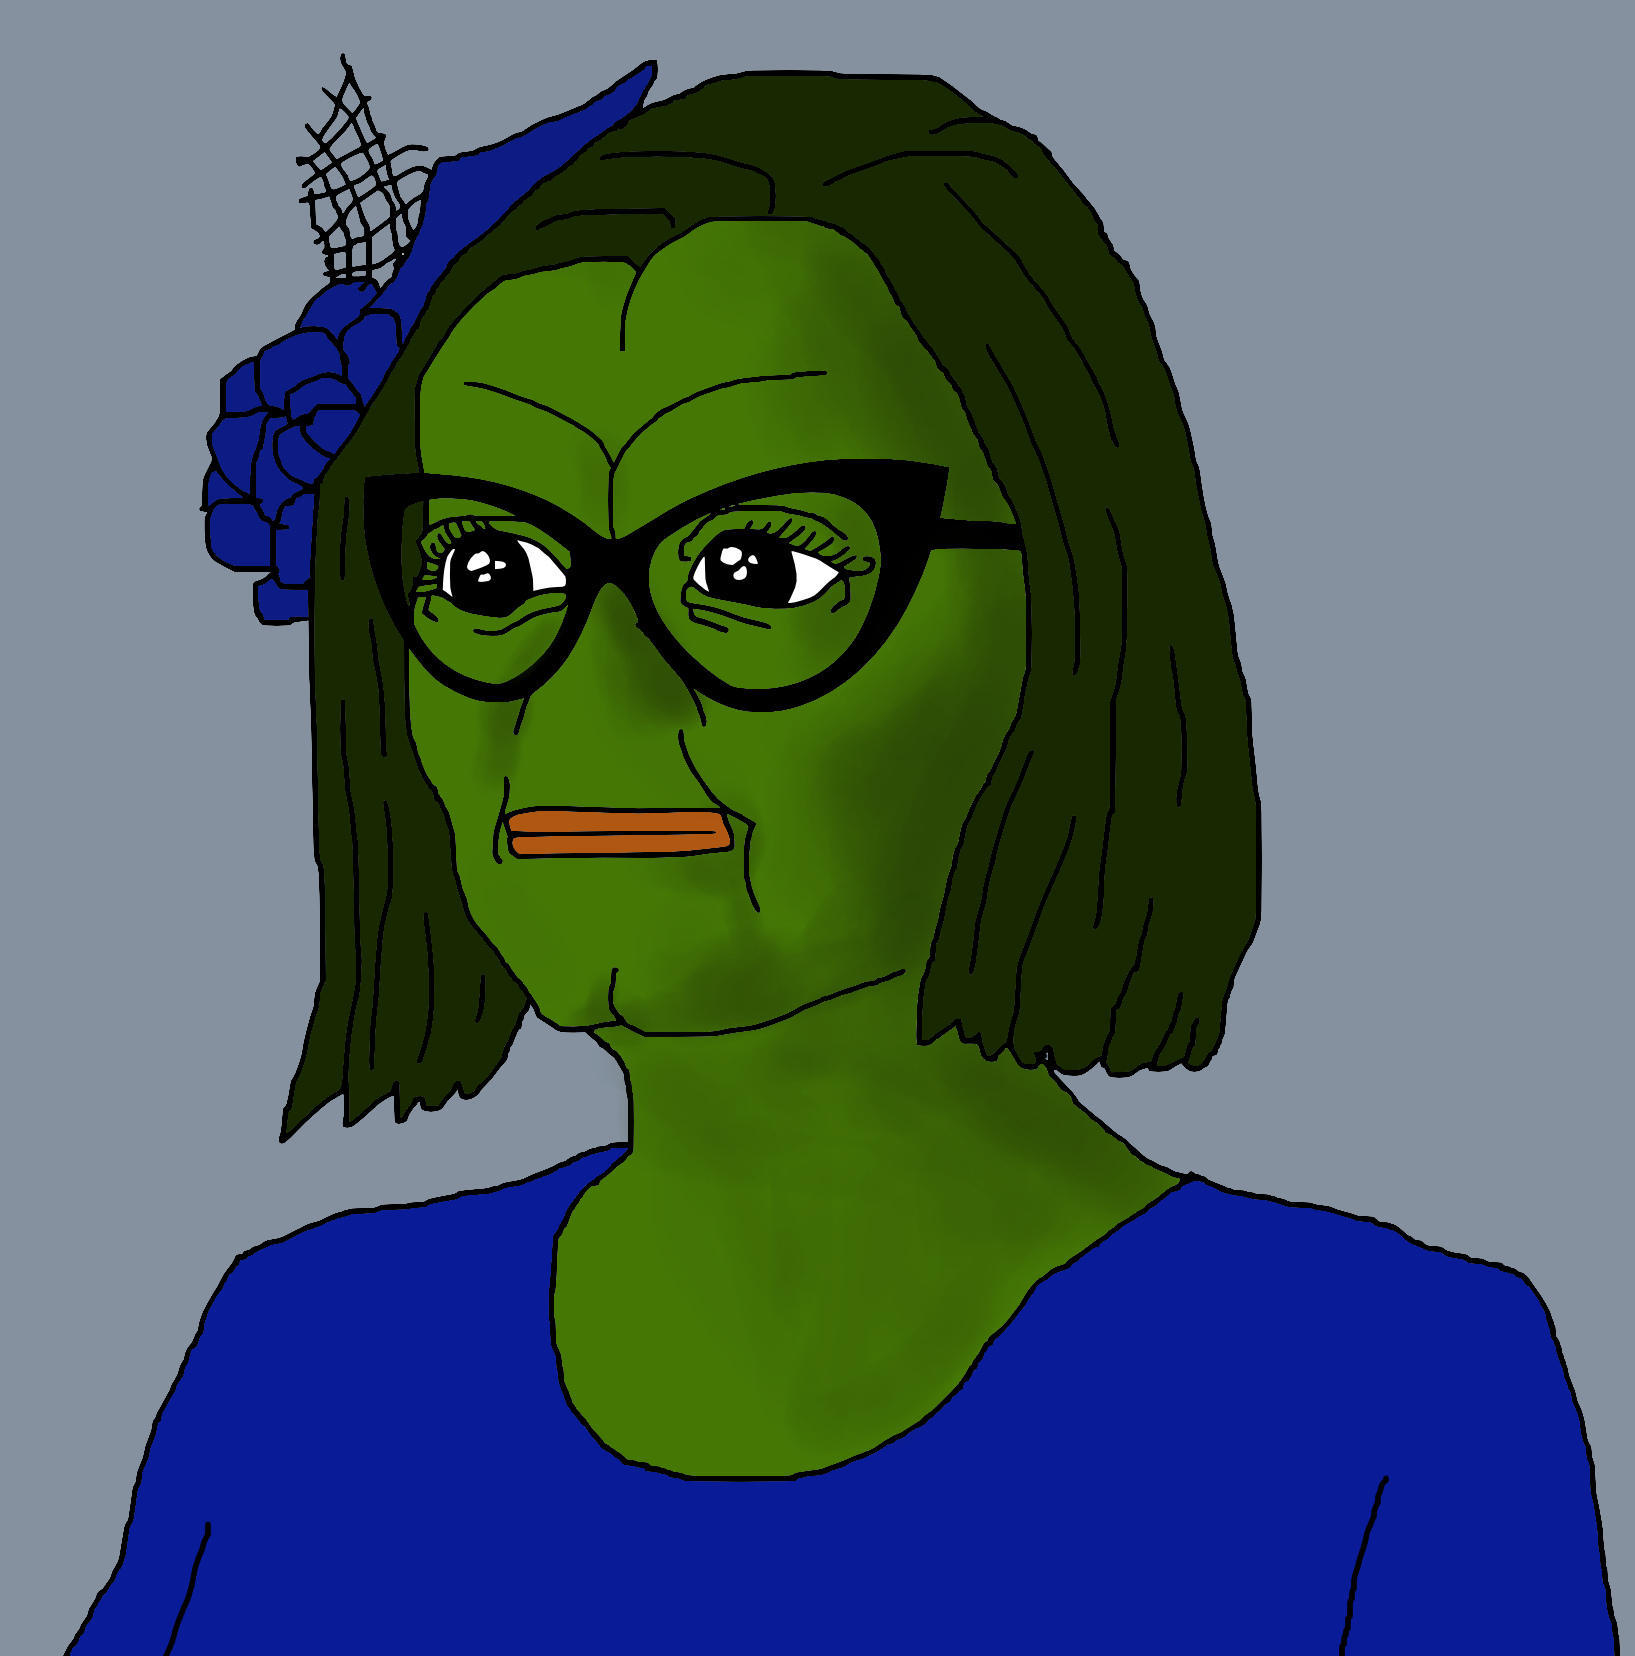 Triggered Pepe Pepe the Frog